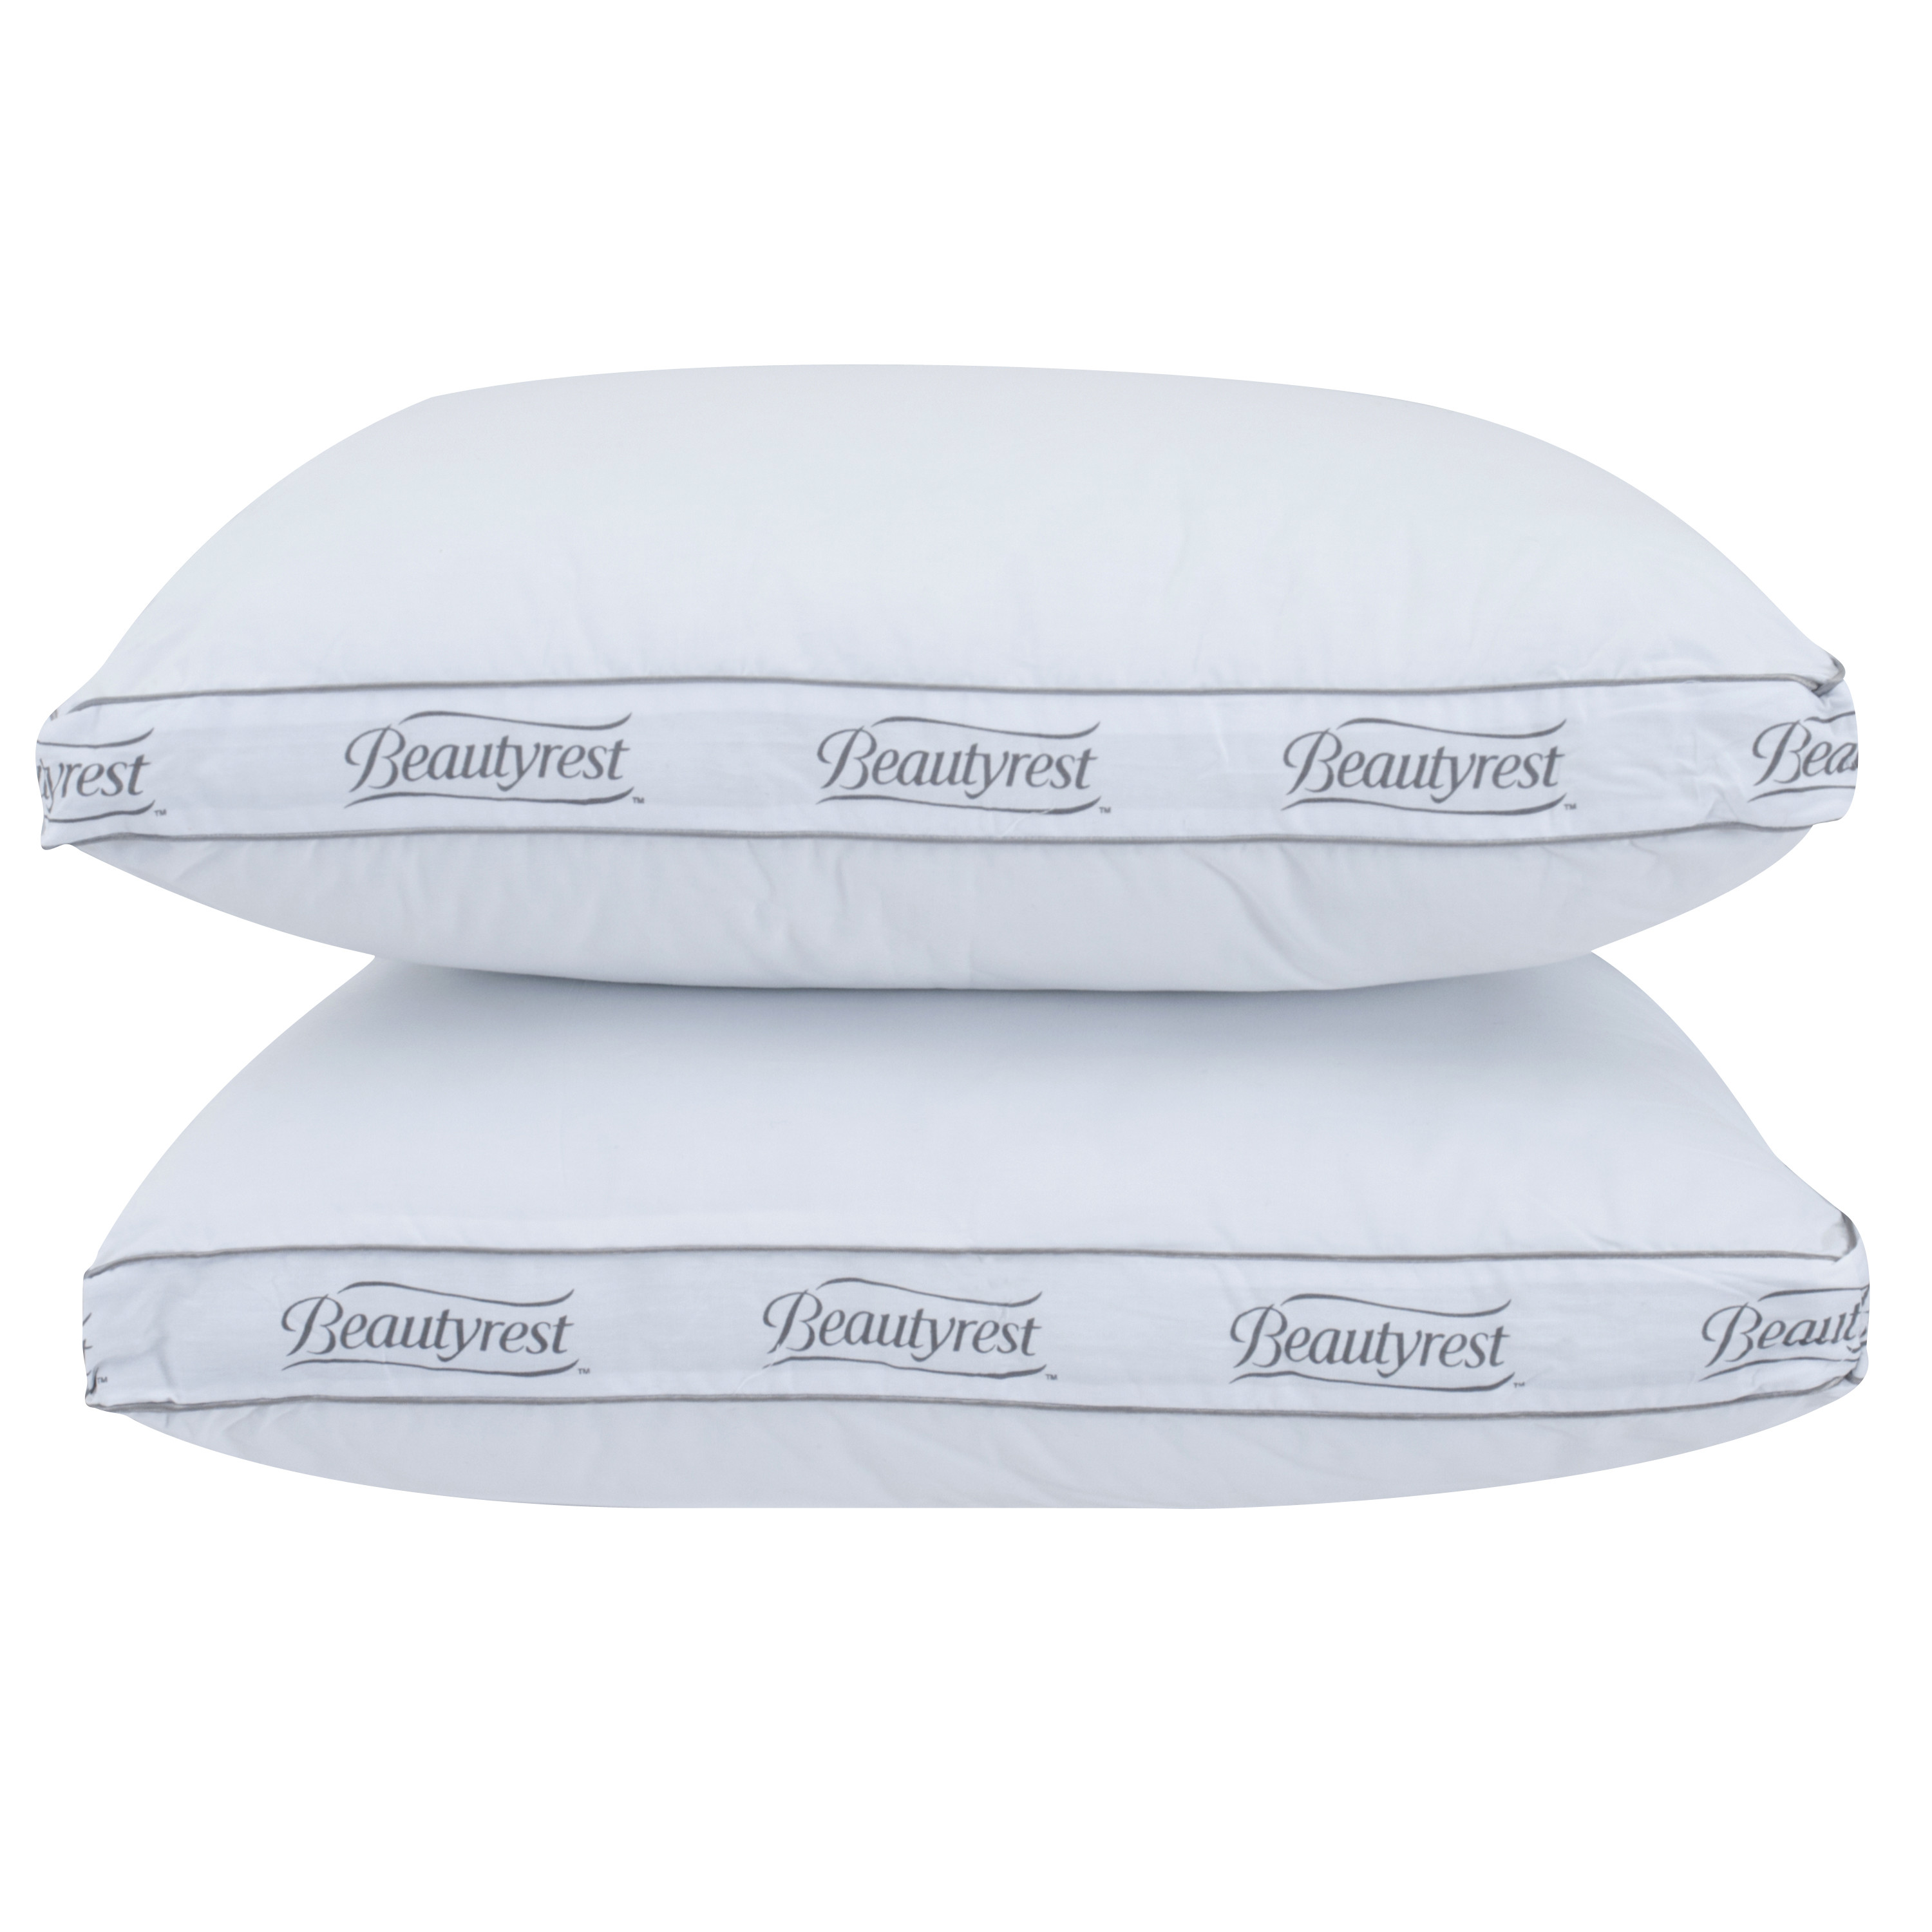 beautyrest luxury power extra firm pillow set of 2 in multiple sizes walmart com